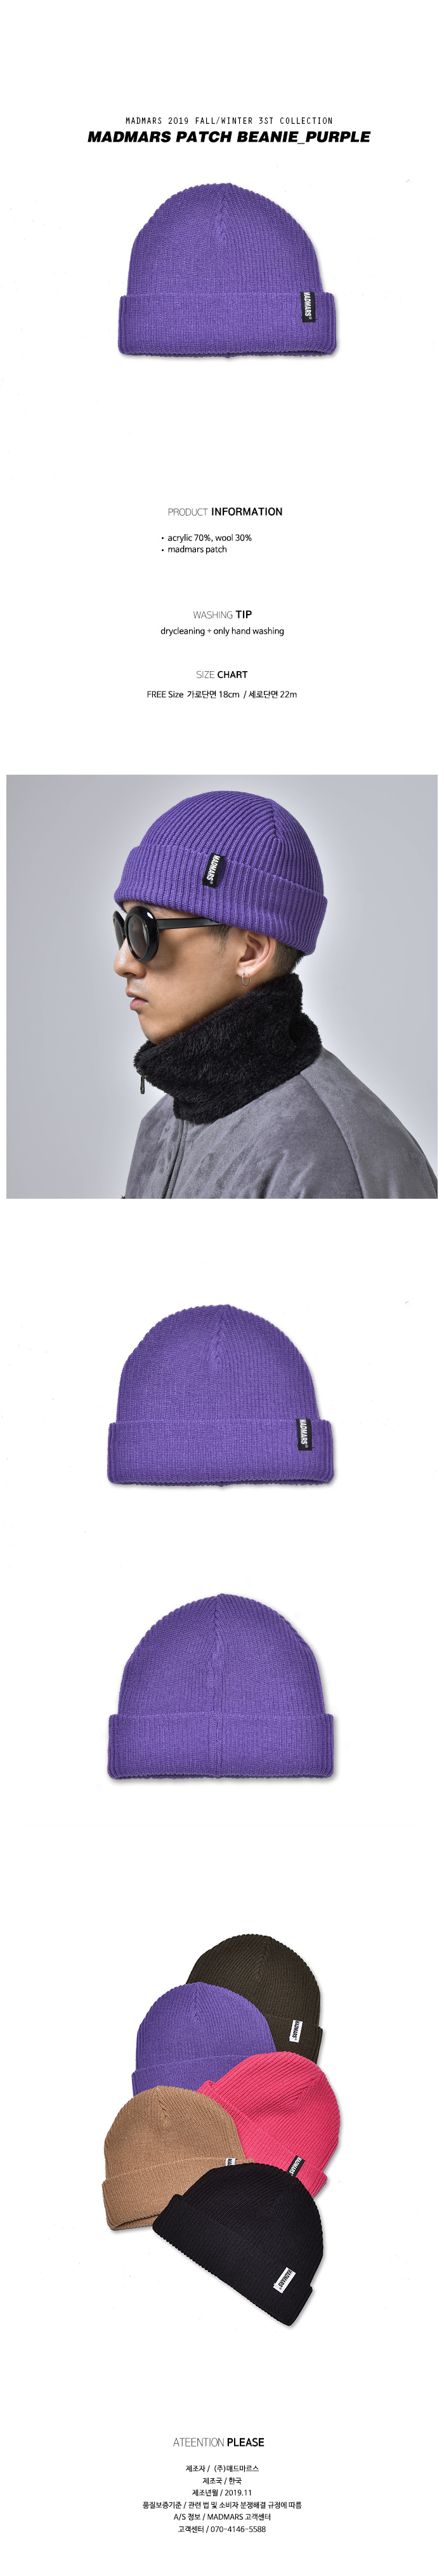 MADMARS PATCH BEANIE_PURPLE.jpg